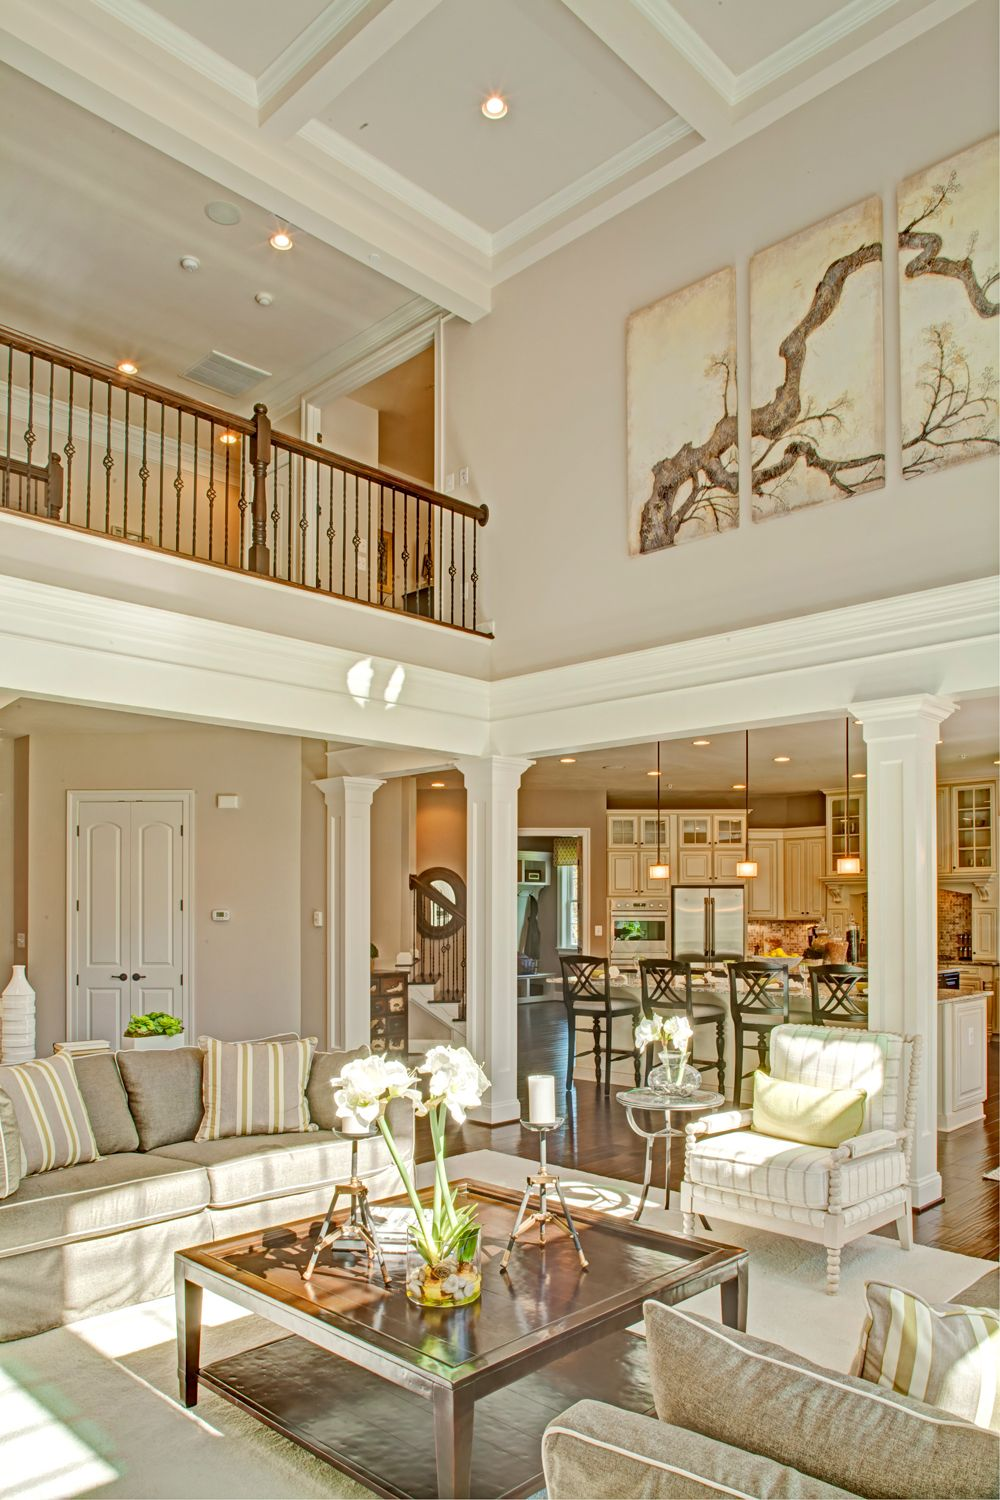 Great Home Design Ideas: Two Story Family Room With Coffered Ceiling